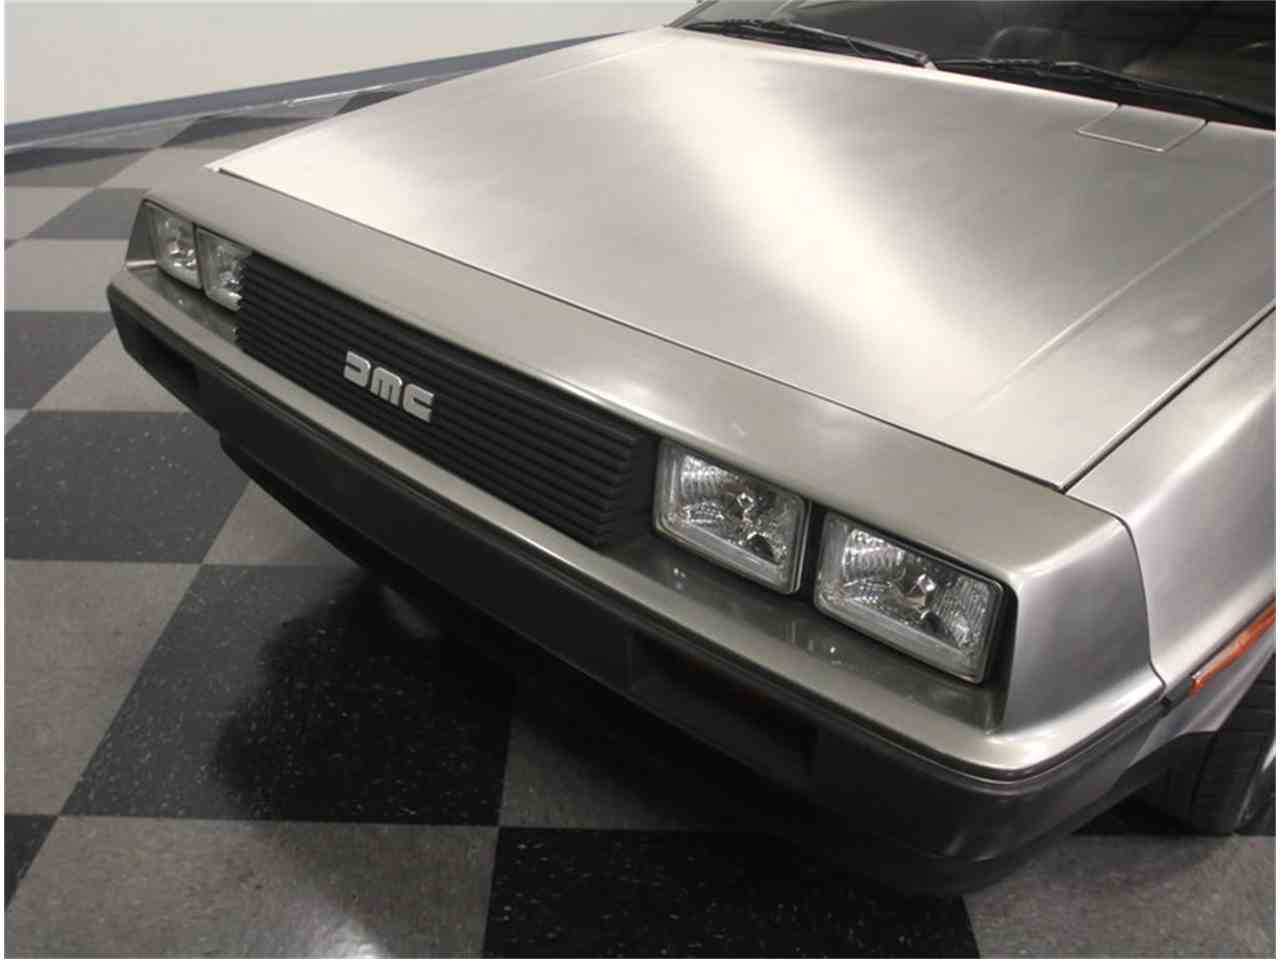 Large Picture of 1981 DMC-12 located in Georgia - $49,995.00 Offered by Streetside Classics - Atlanta - MGXM